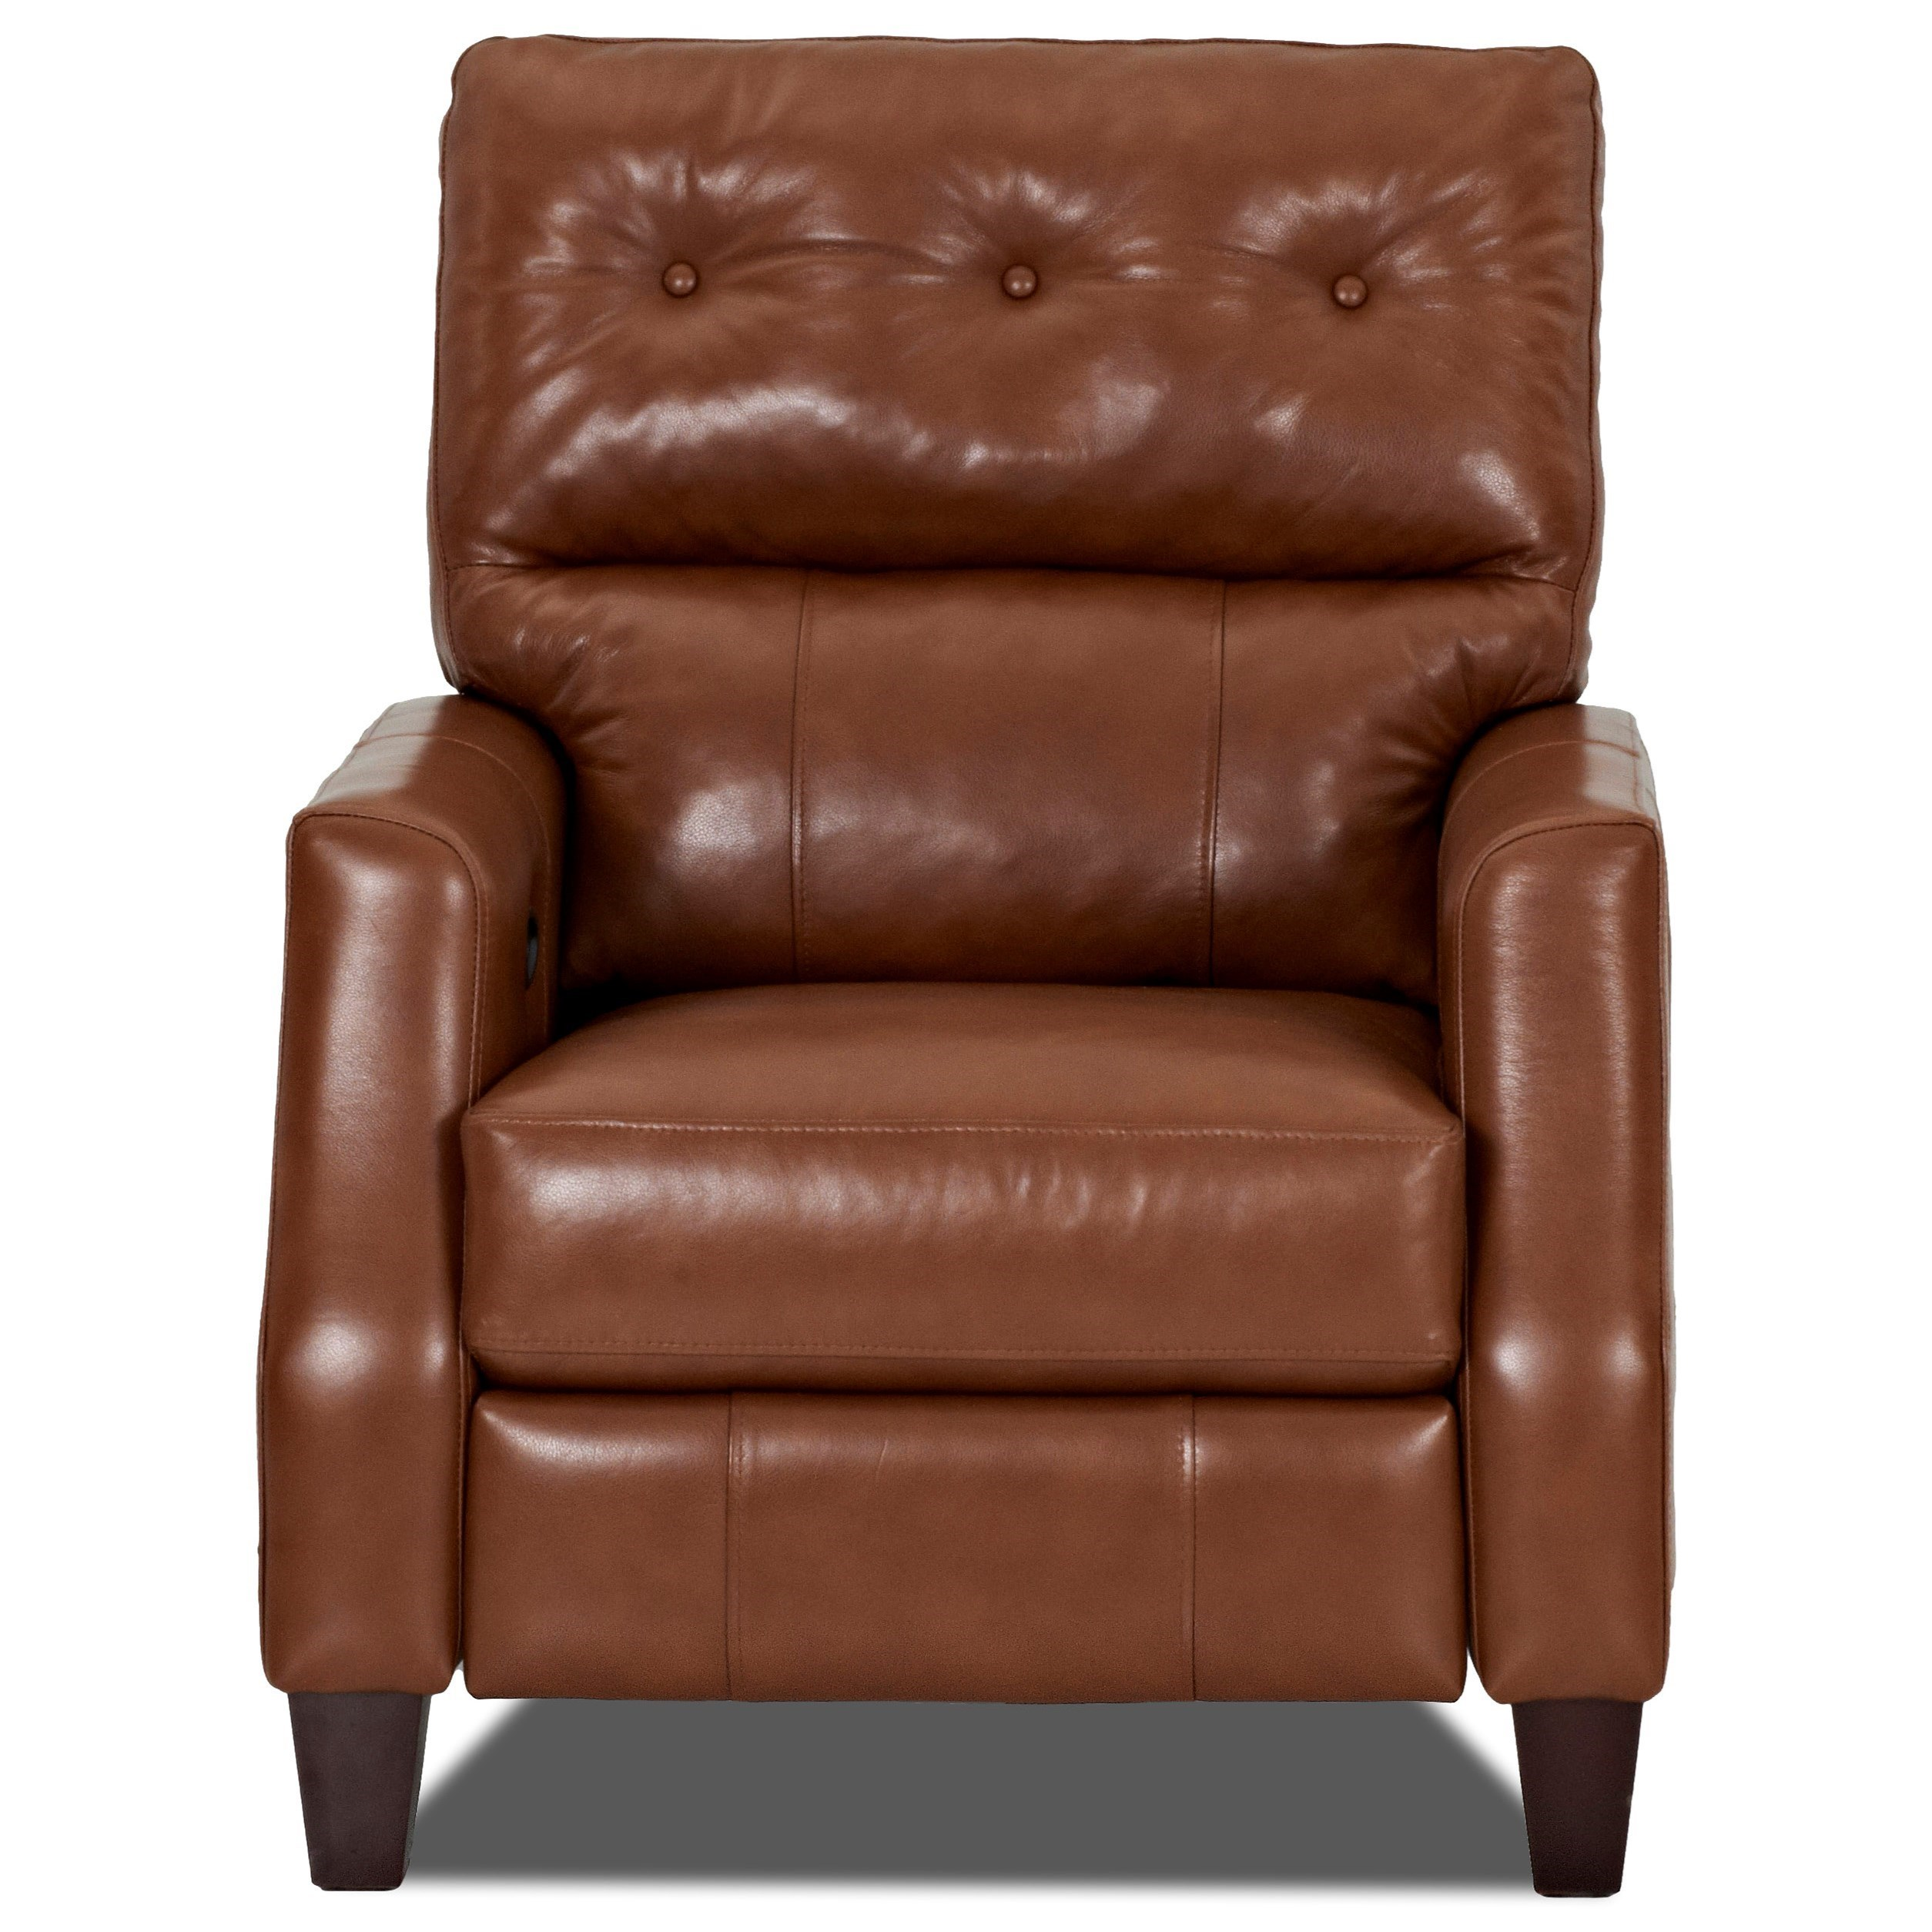 Klaussner Amesbury  Power High Leg Reclining Chair - Item Number: LV51708 PHLRC-DurangoAcorn